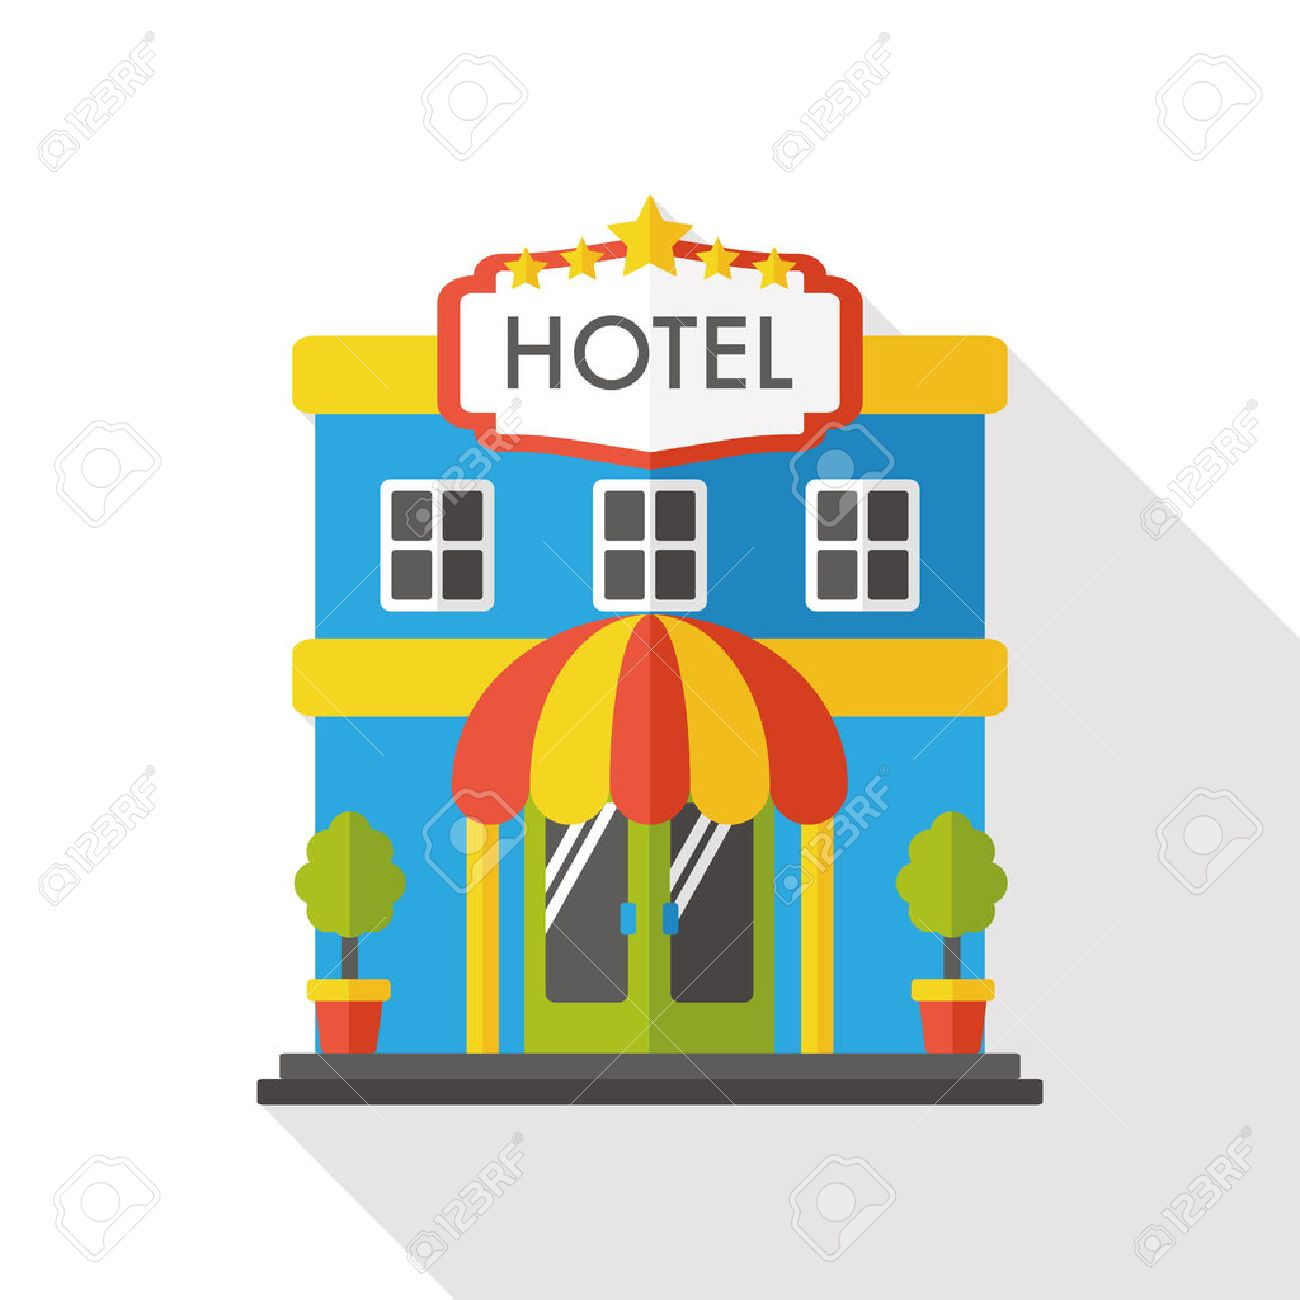 Hotel Flat Icon Royalty Free Cliparts Vectors And Stock